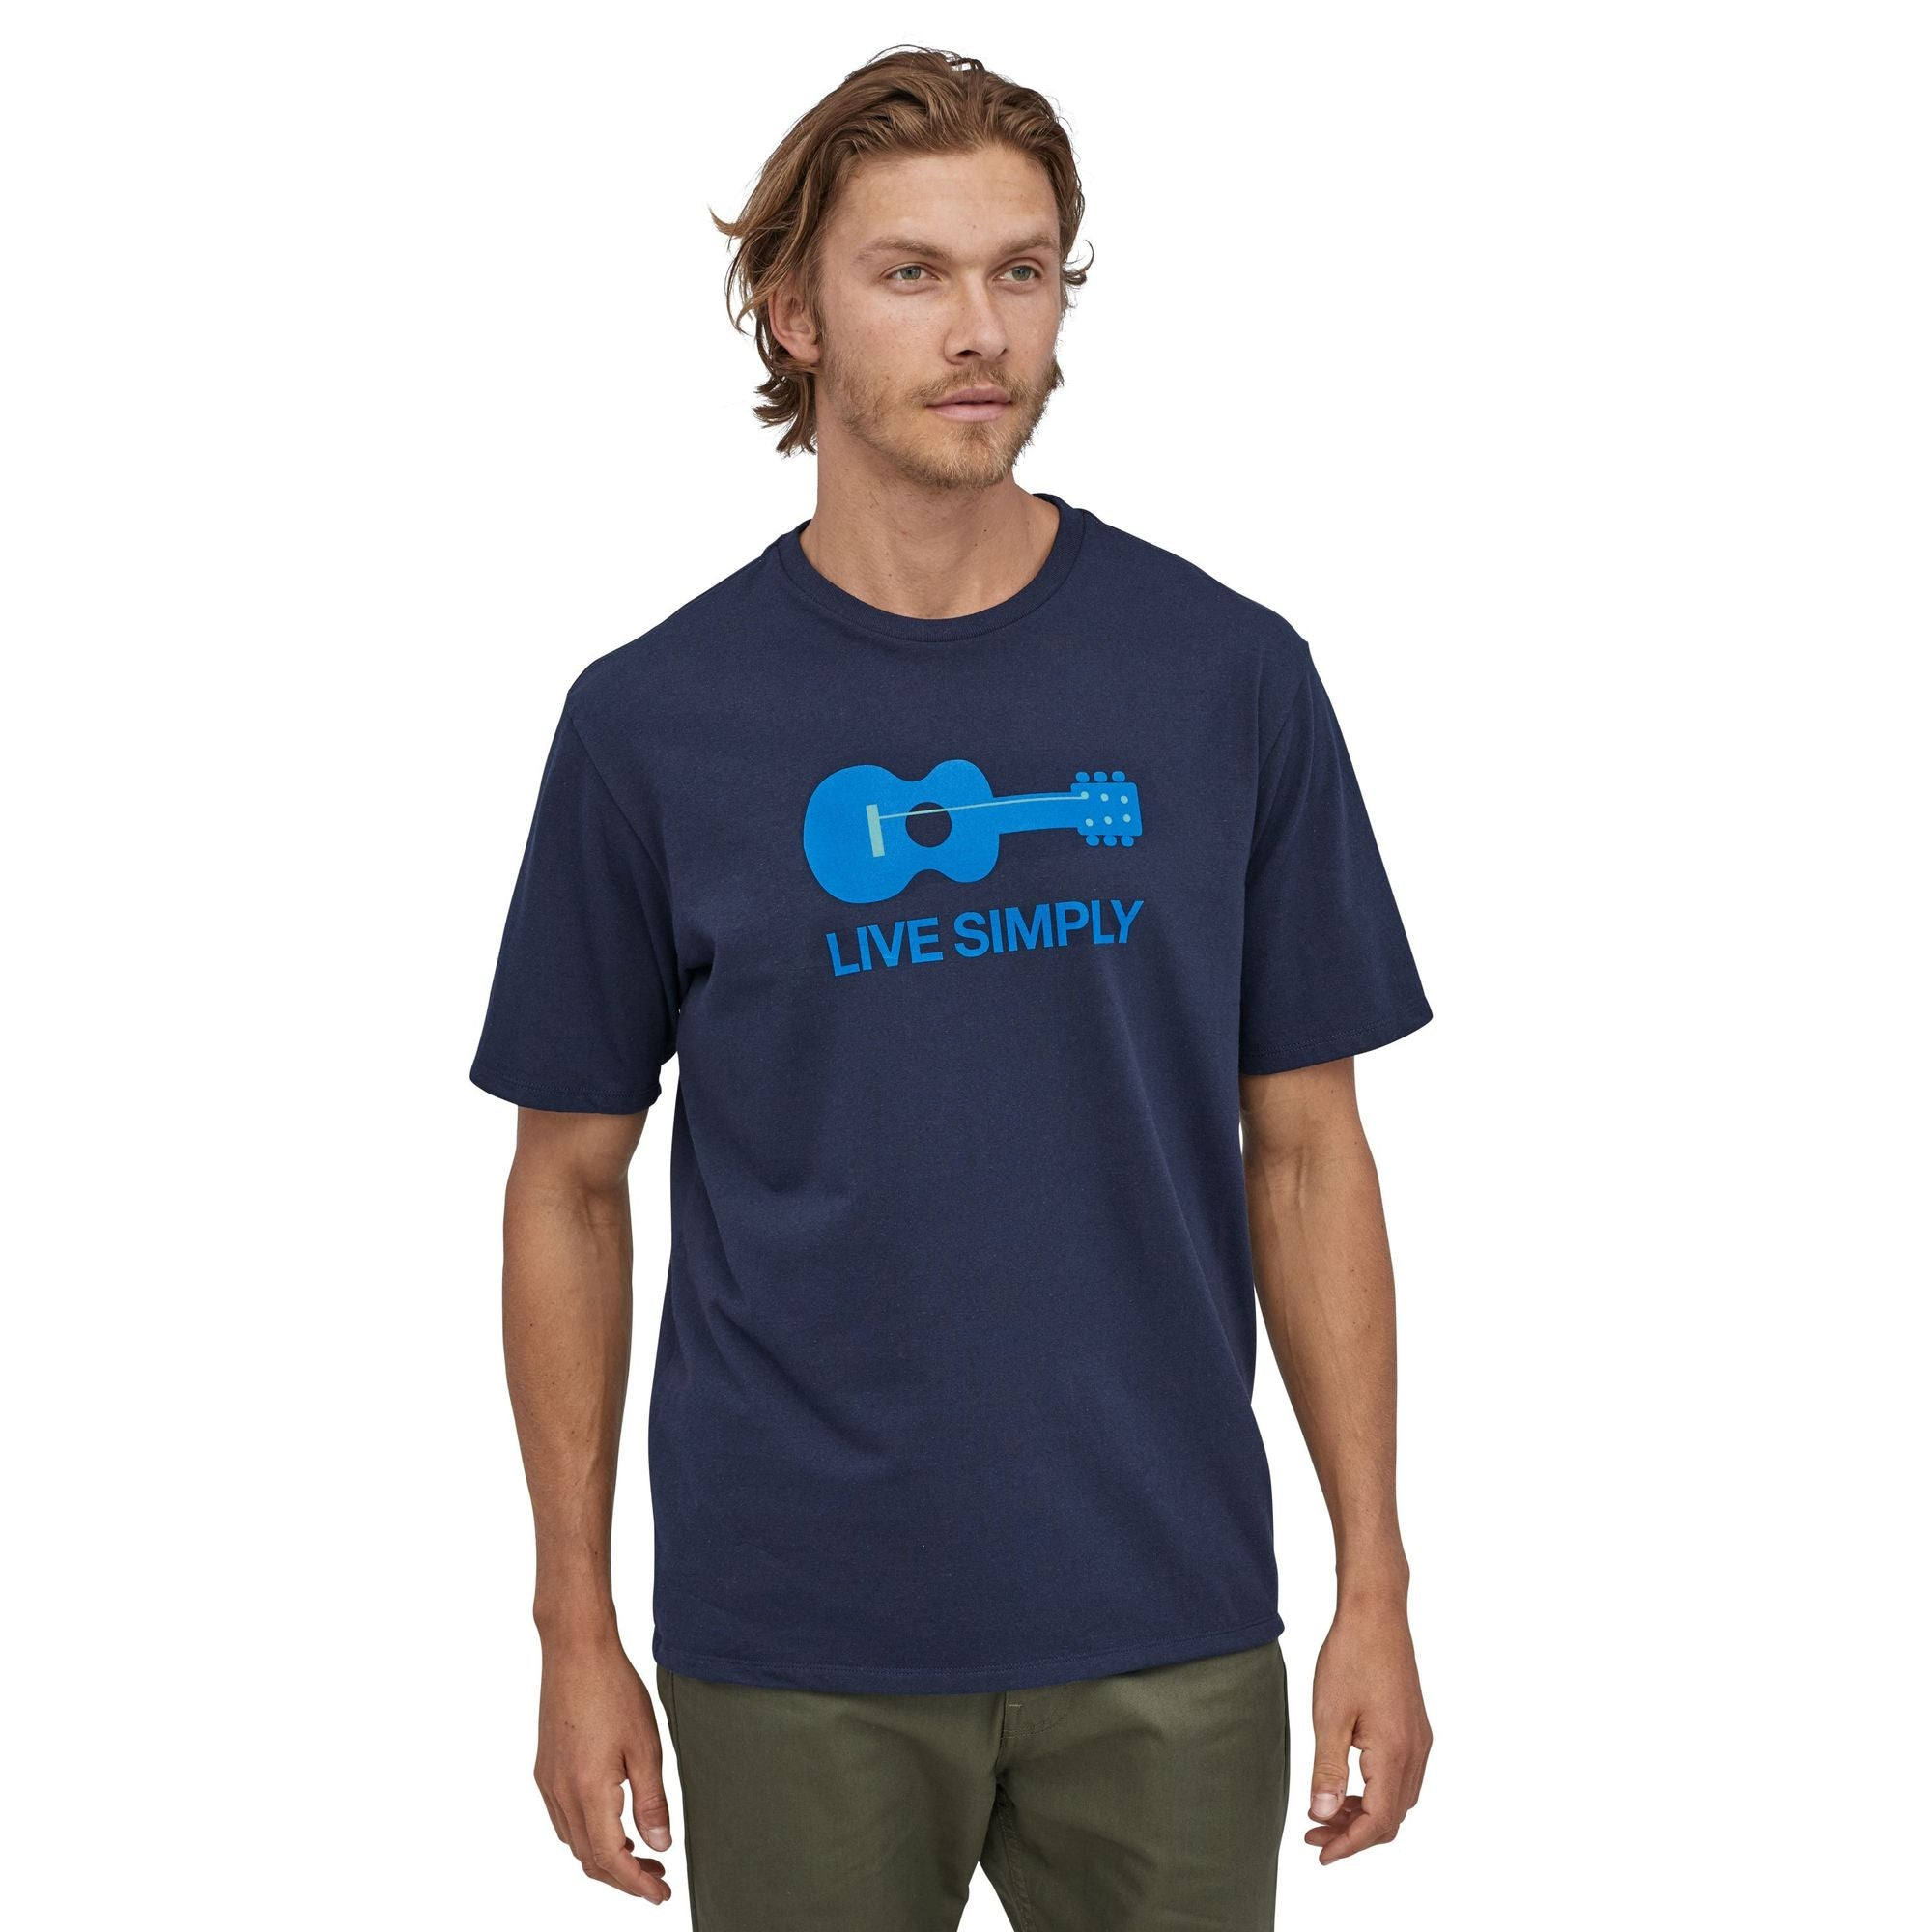 Patagonia Live Simply Guitar Responsibili-Tee (Men's) - White - Find Your Feet Australia Hobart Launceston Tasmania